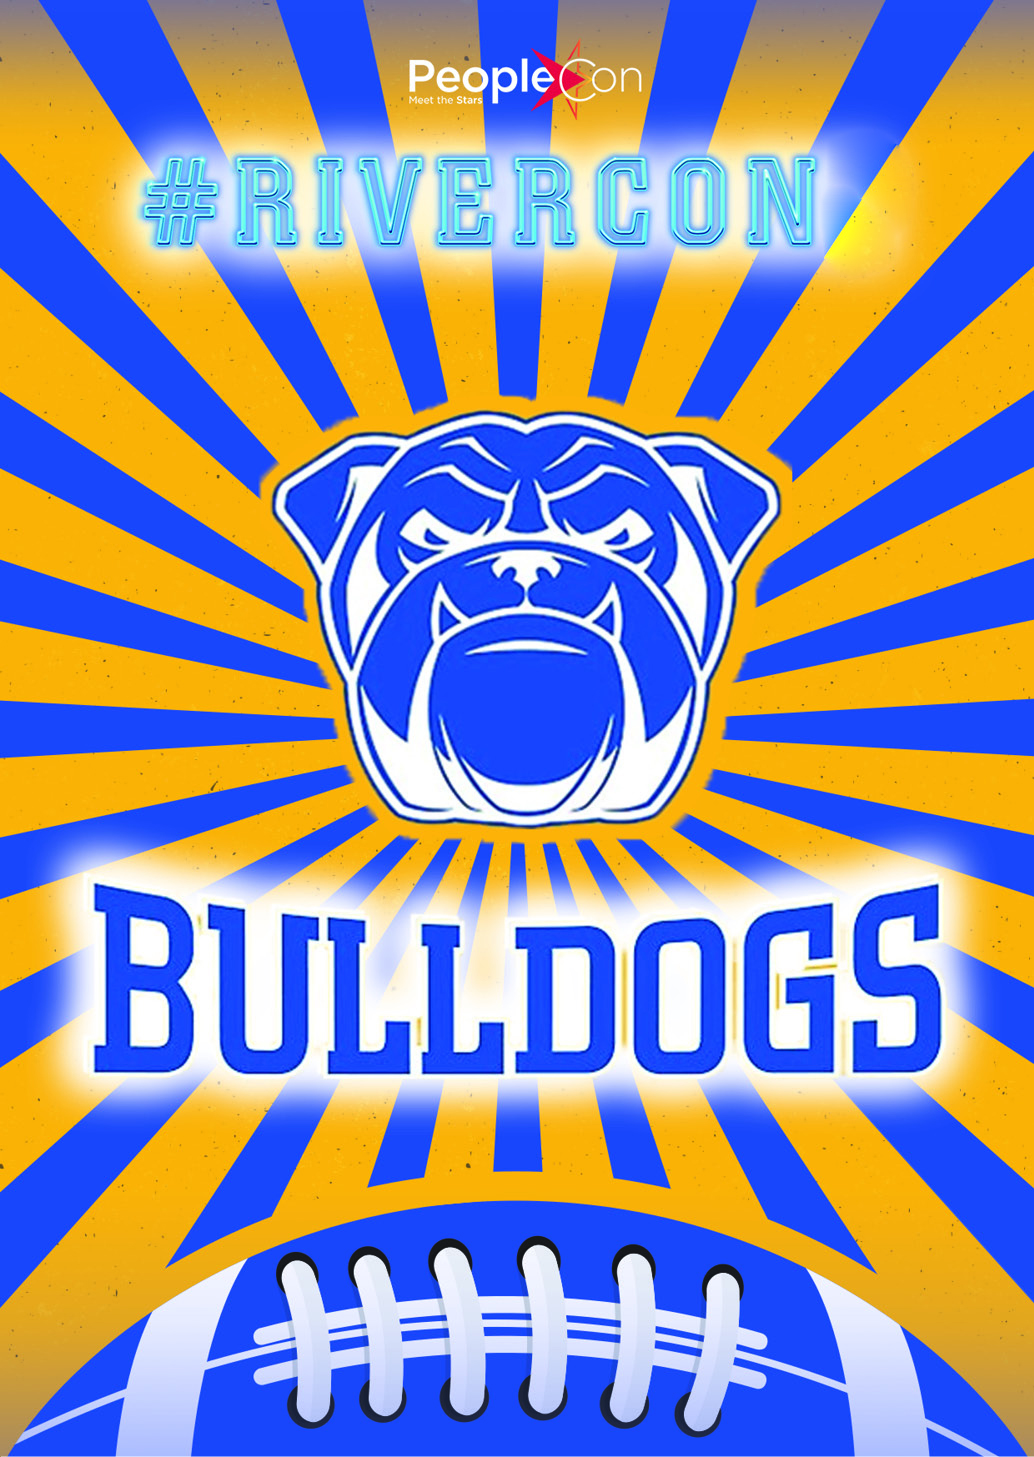 PASS BULLDOGS